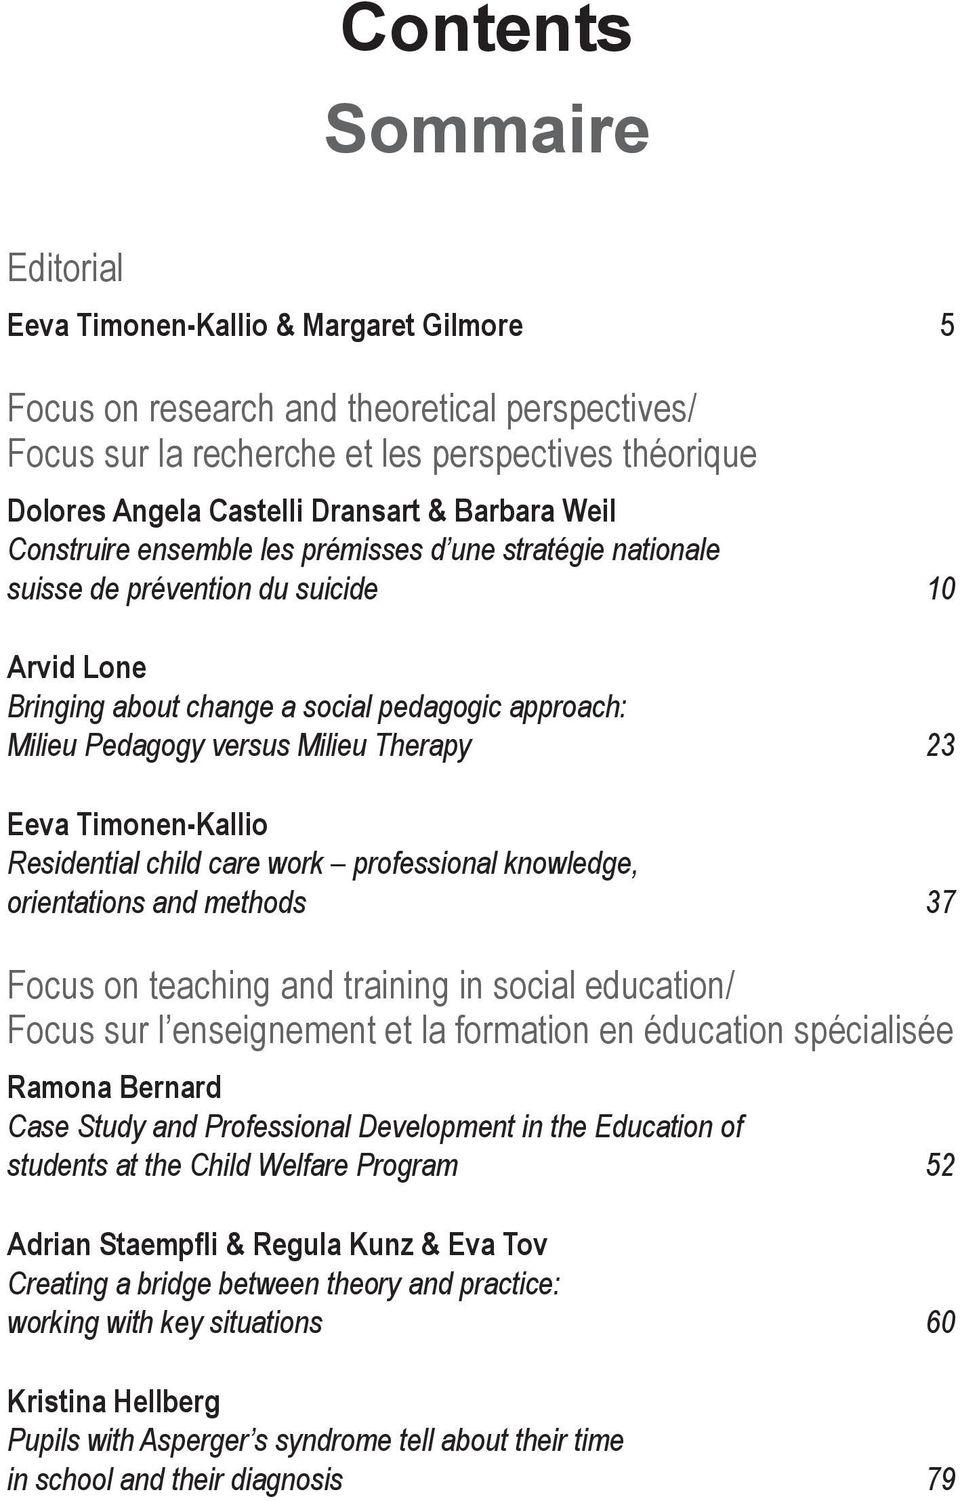 versus Milieu Therapy 23 Eeva Timonen-Kallio Residential child care work professional knowledge, orientations and methods 37 Focus on teaching and training in social education/ Focus sur l